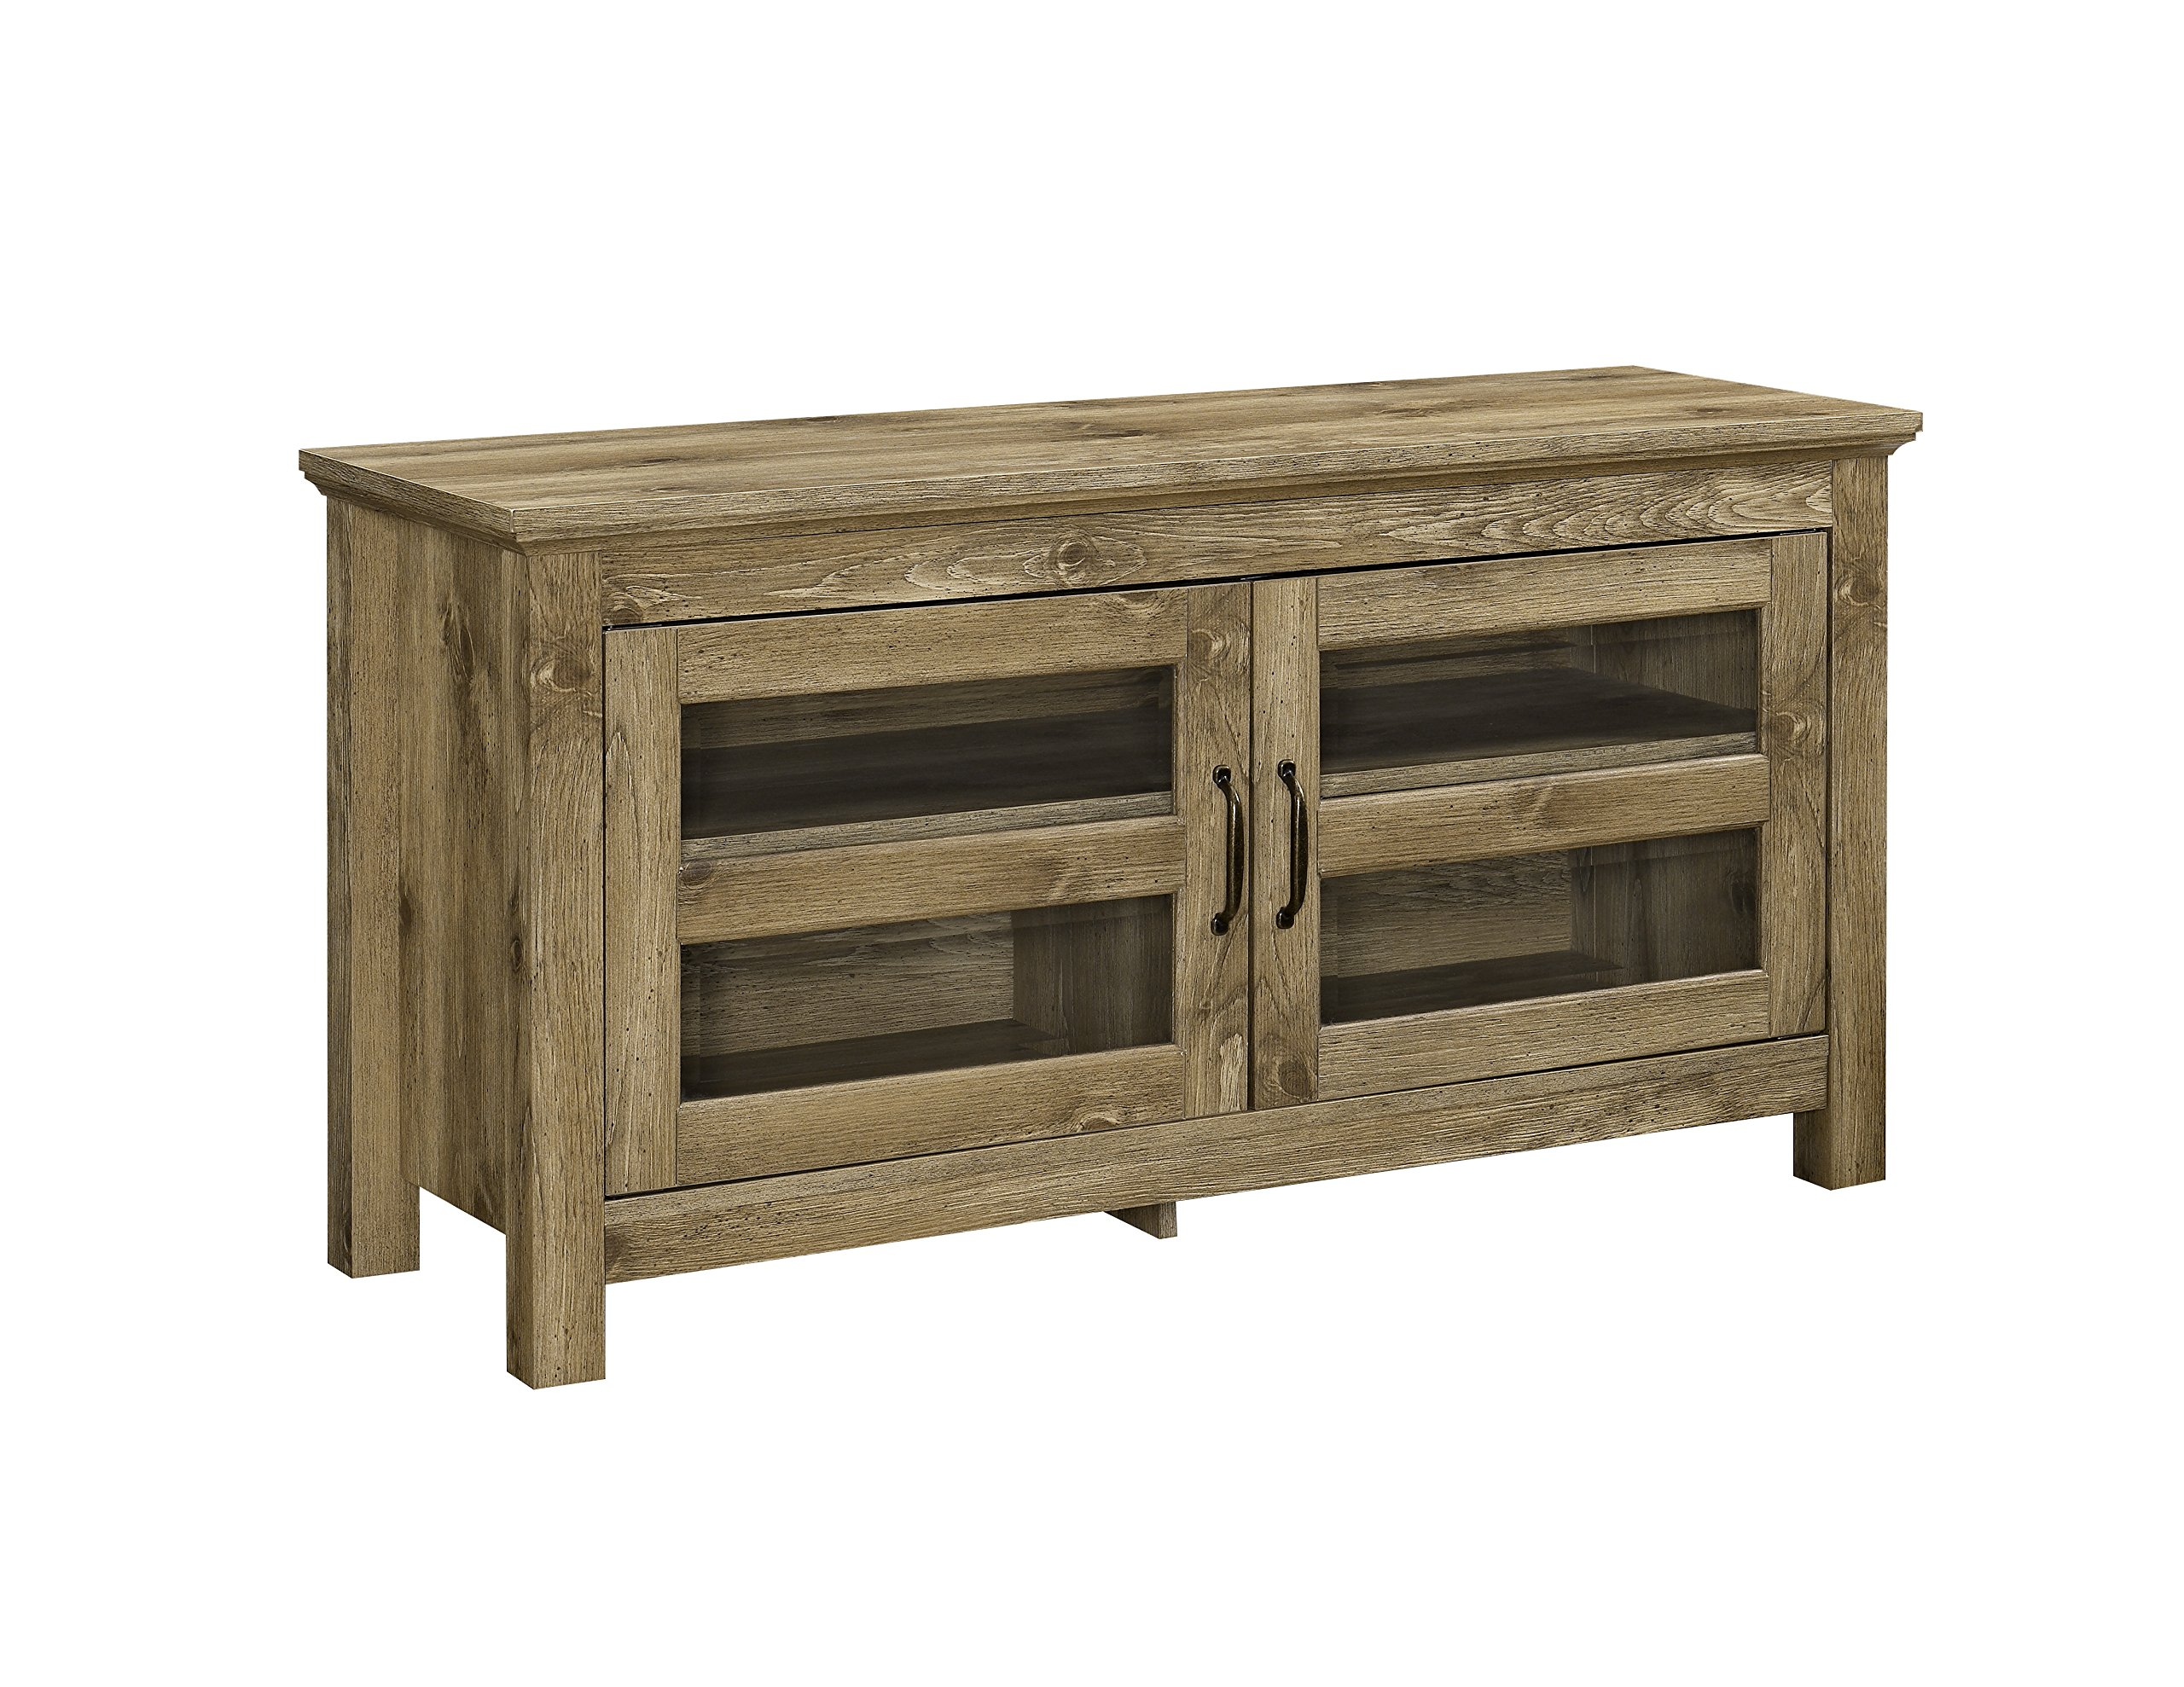 WE Furniture AZQ44CFDBW Simple Wood Stand for TV's up to 48'' Living Room Storage, Barnwood by WE Furniture